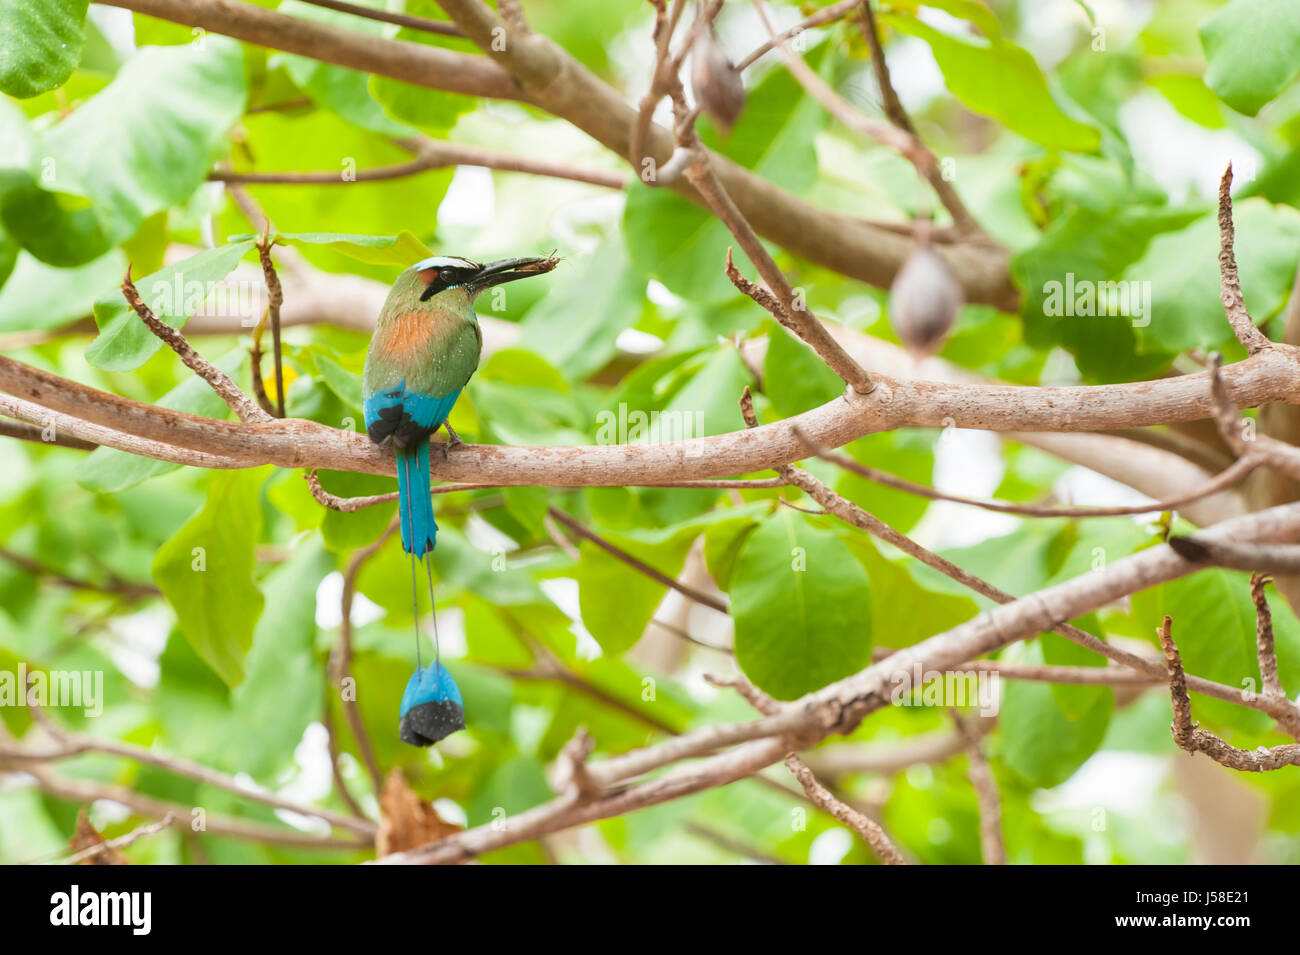 Turquoise browed mot mot sits in an almond tree holding an insect - Stock Image